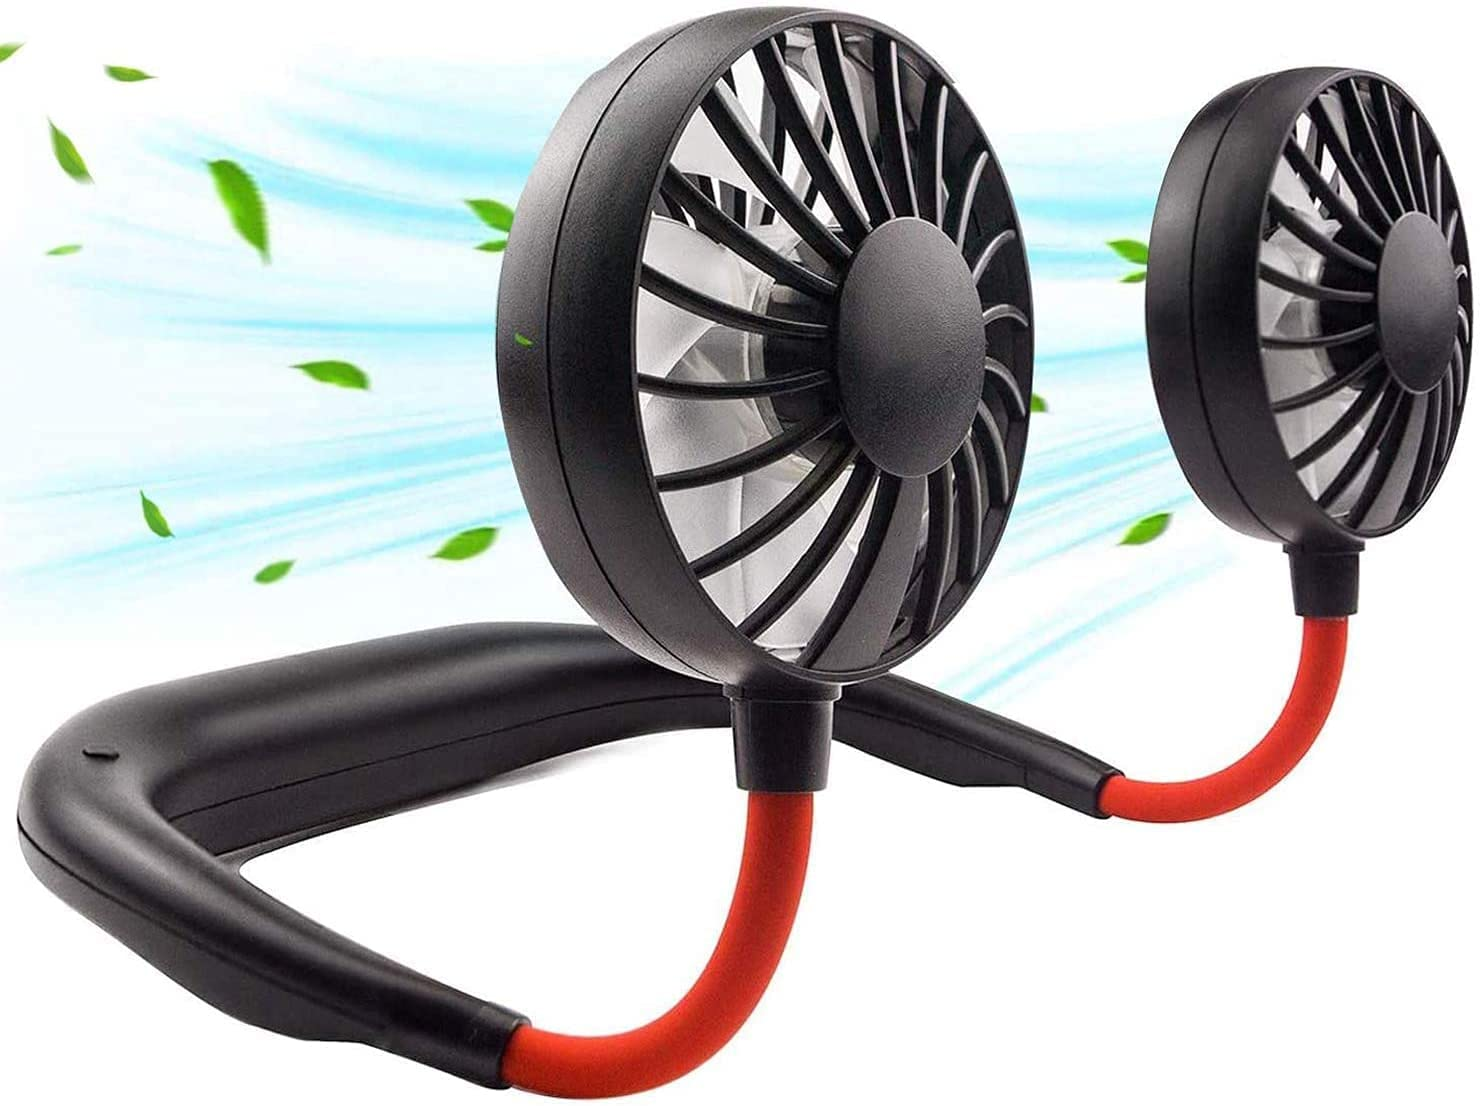 Portable Neck Fan, Hand Free Personal Hanging Neck Sports Fan USB Rechargeable (3 Speed Adjustable) Wearable Cooling Head Fan,360 Degree Free Rotation for Traveling, Sports, Office, Reading